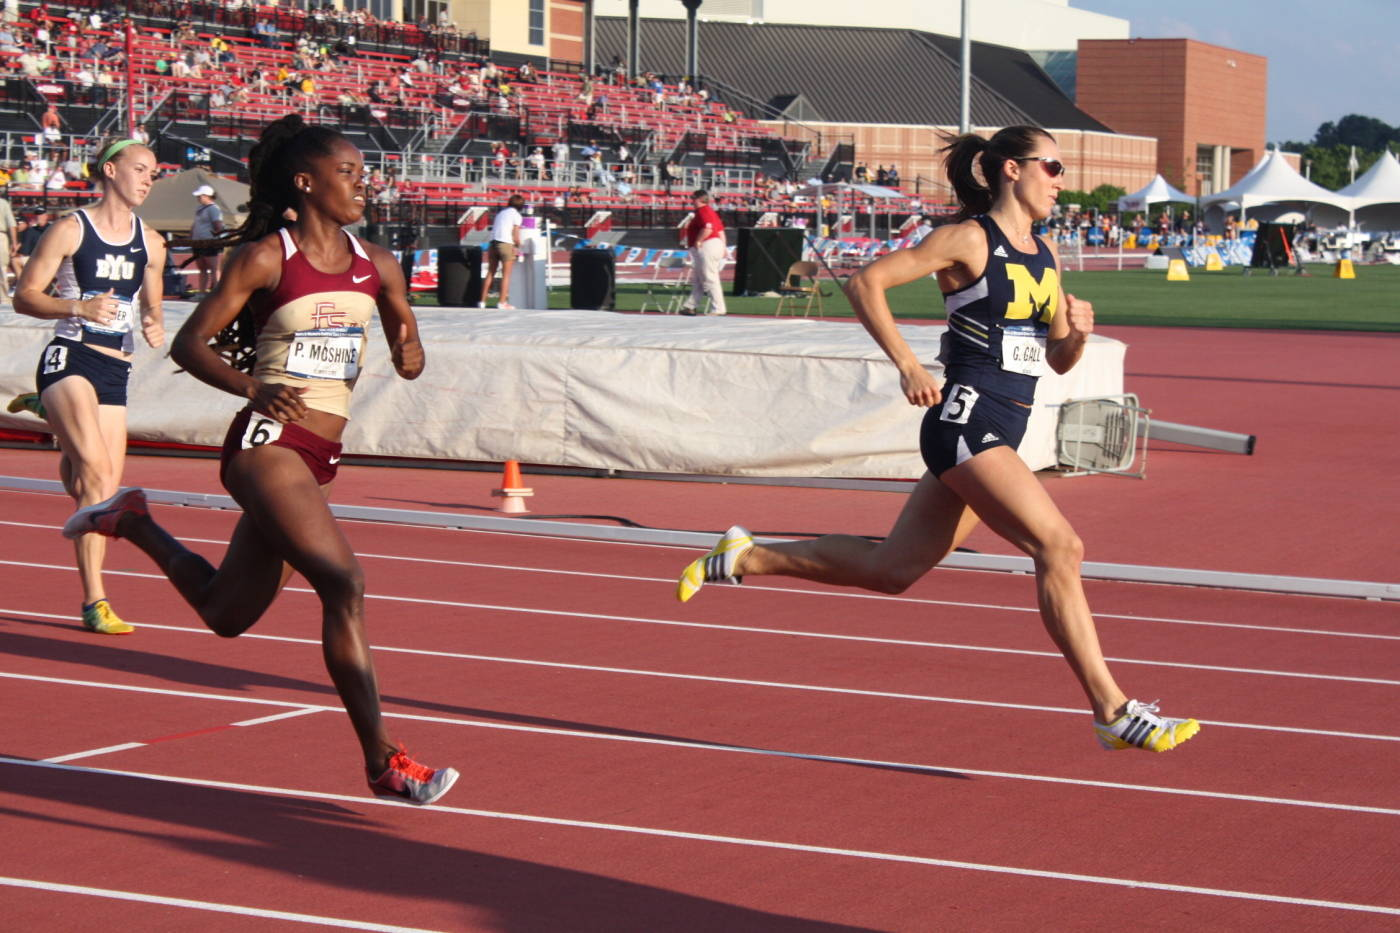 Pilar McShine in the 800m run.